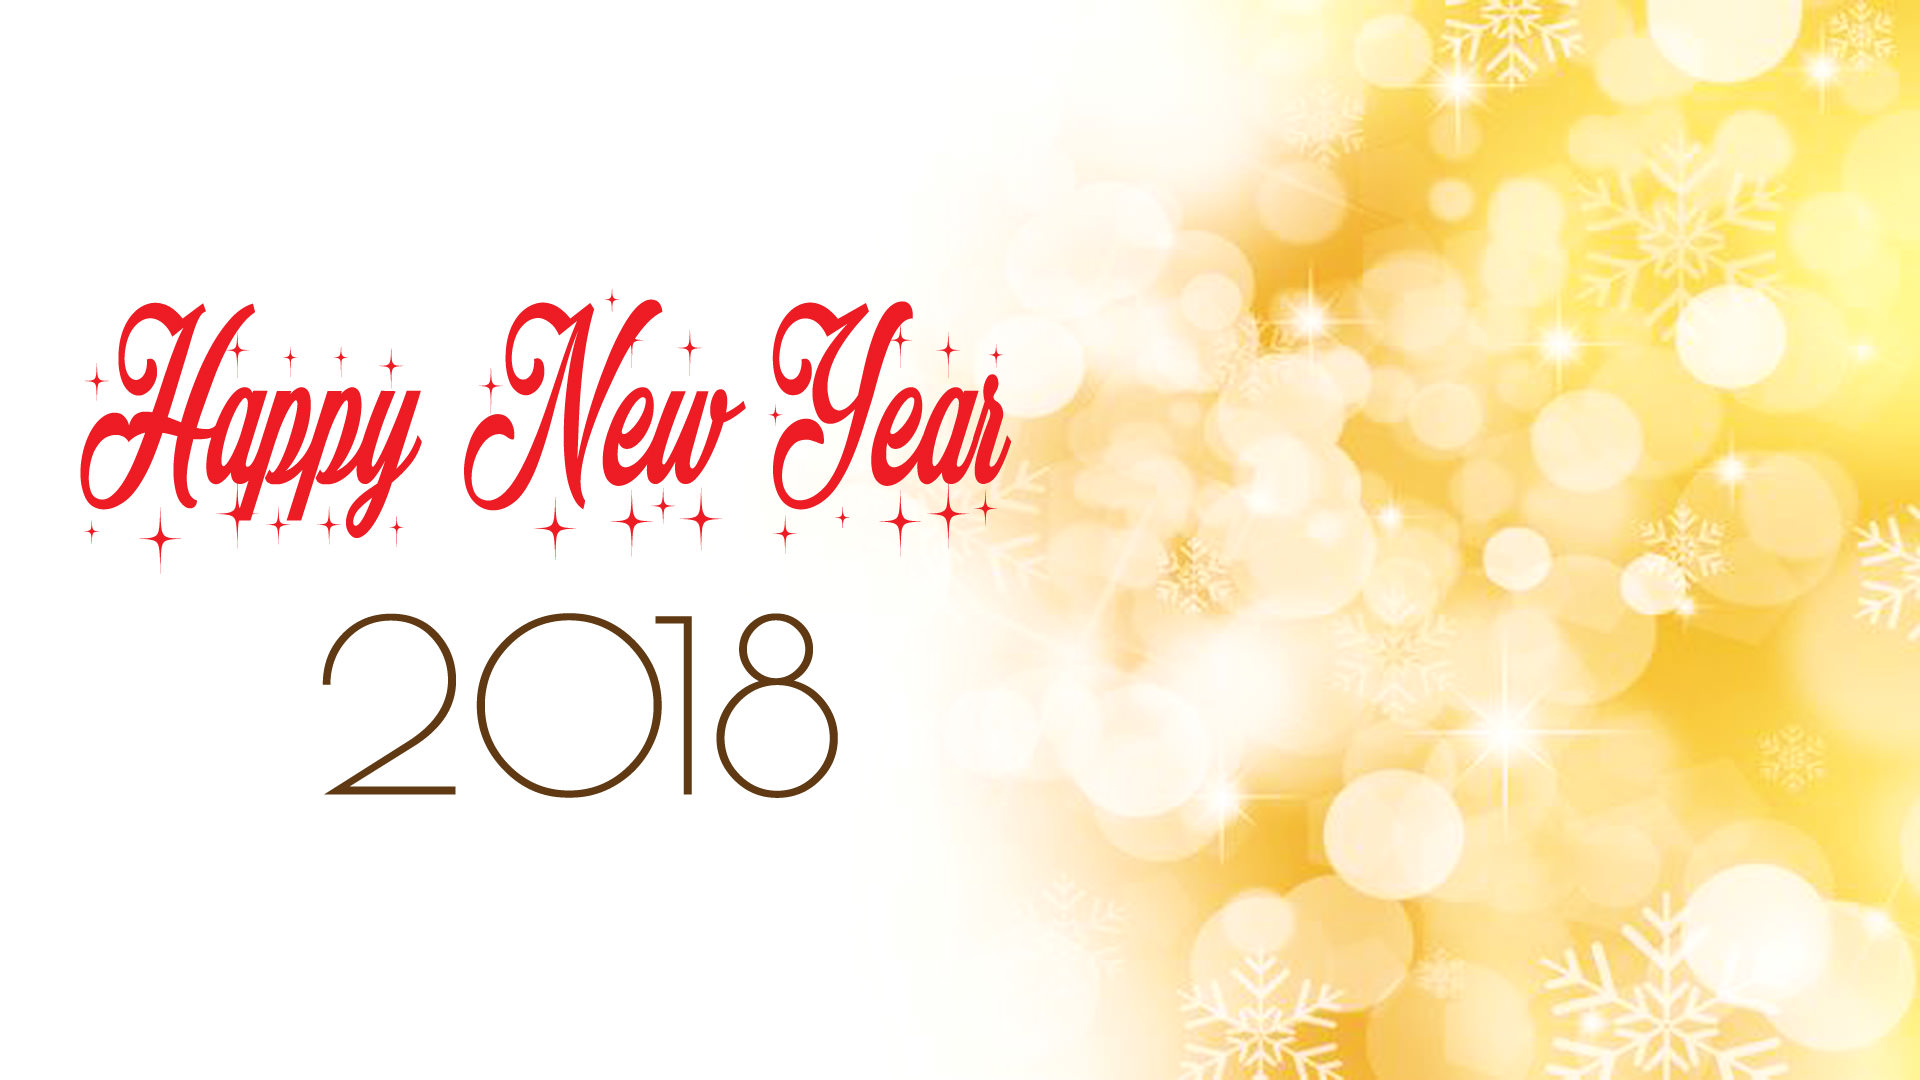 Happy New Year 2018 Background Photo